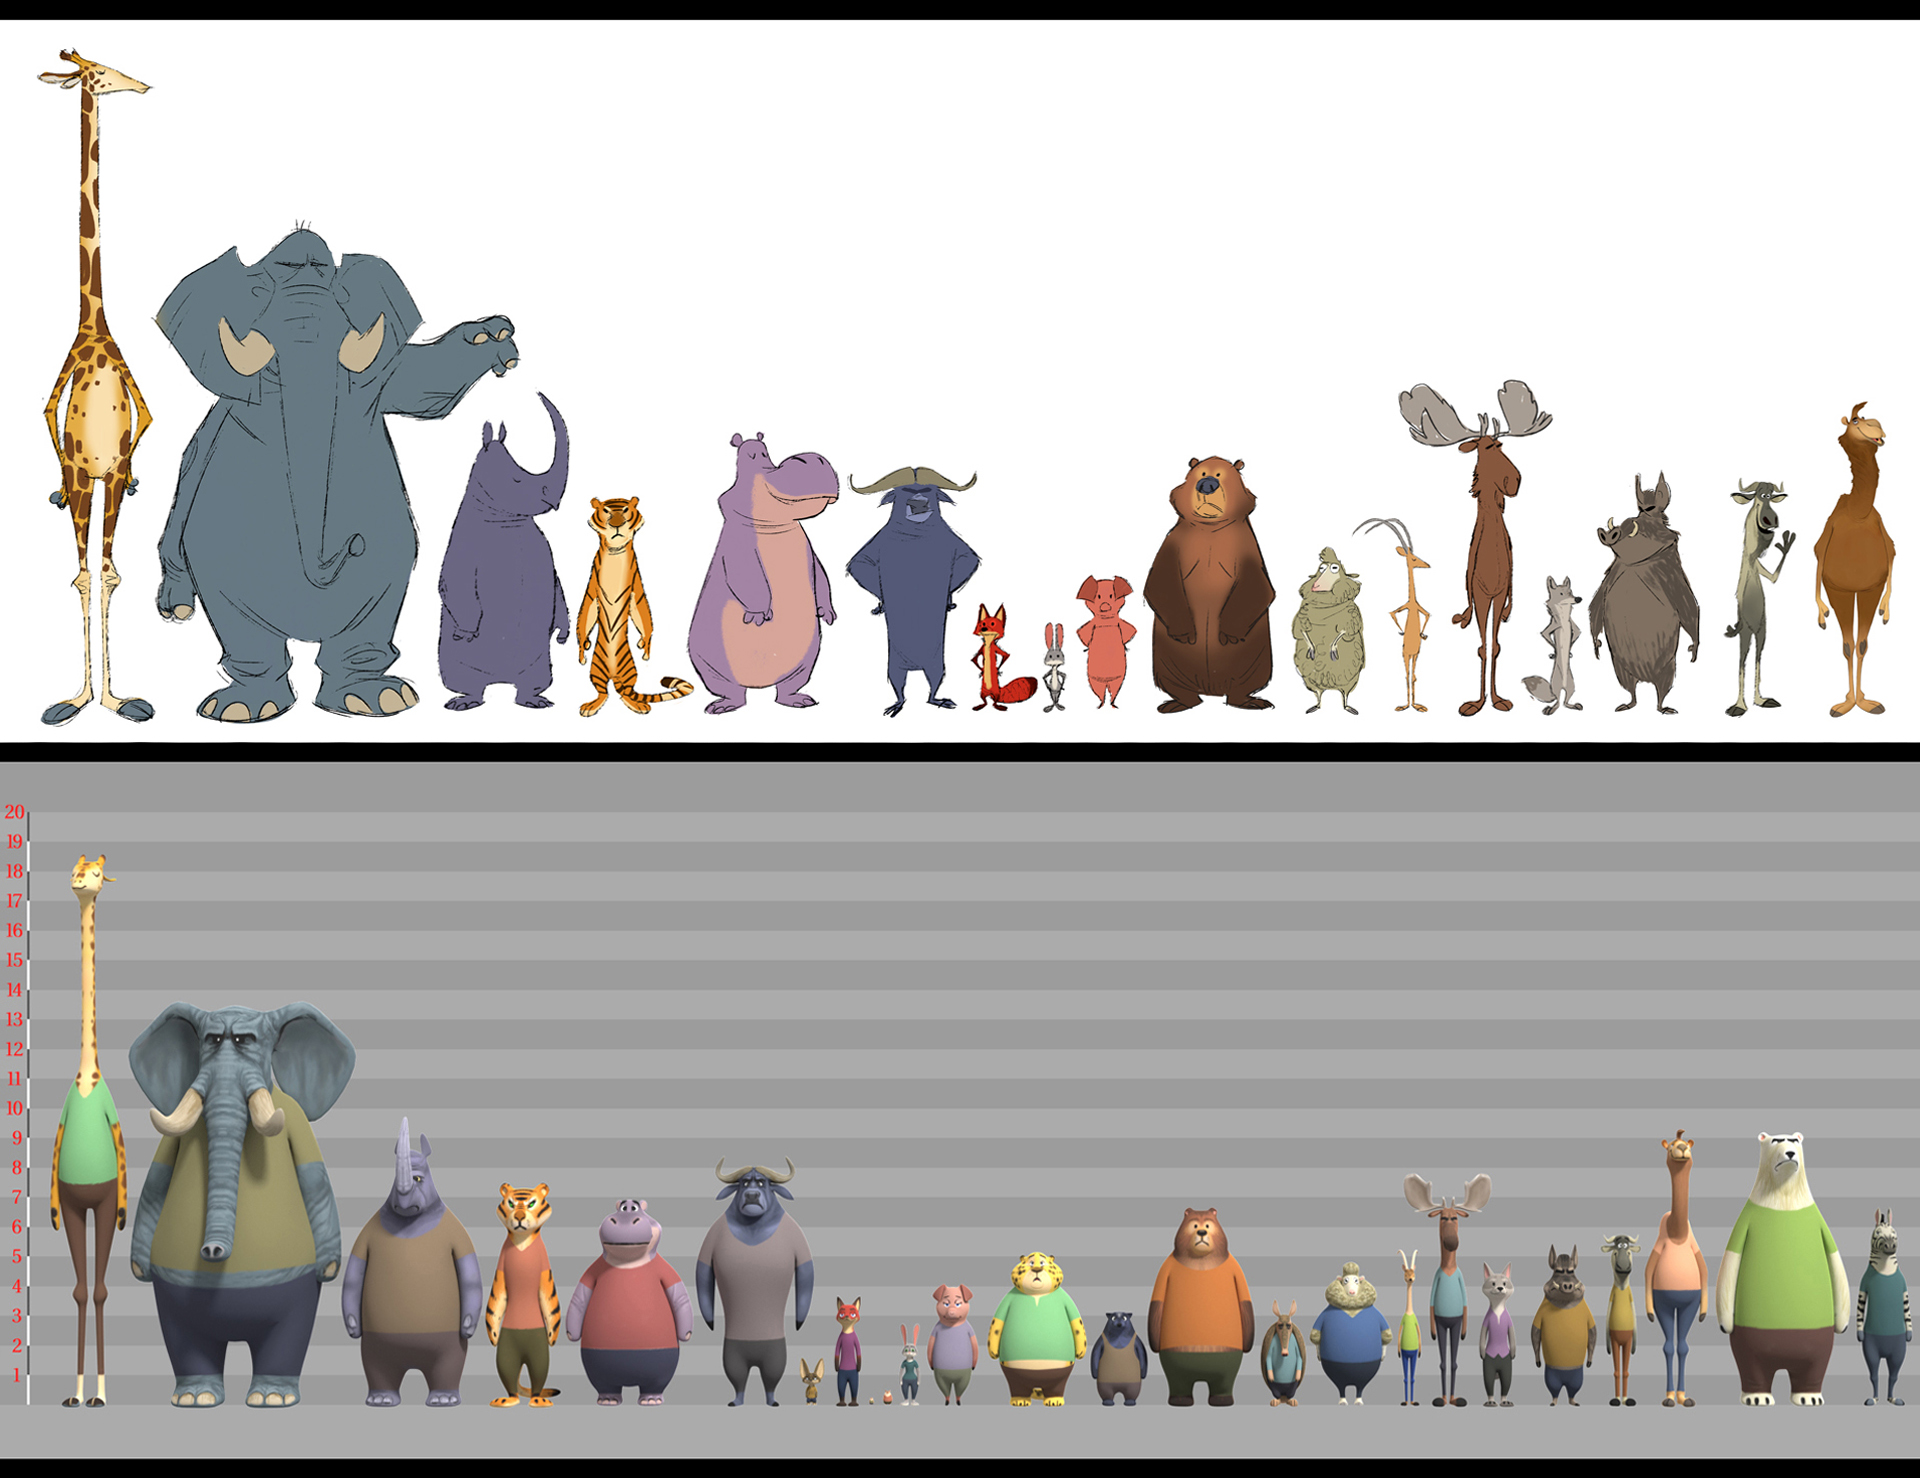 List of Species from Zootopia